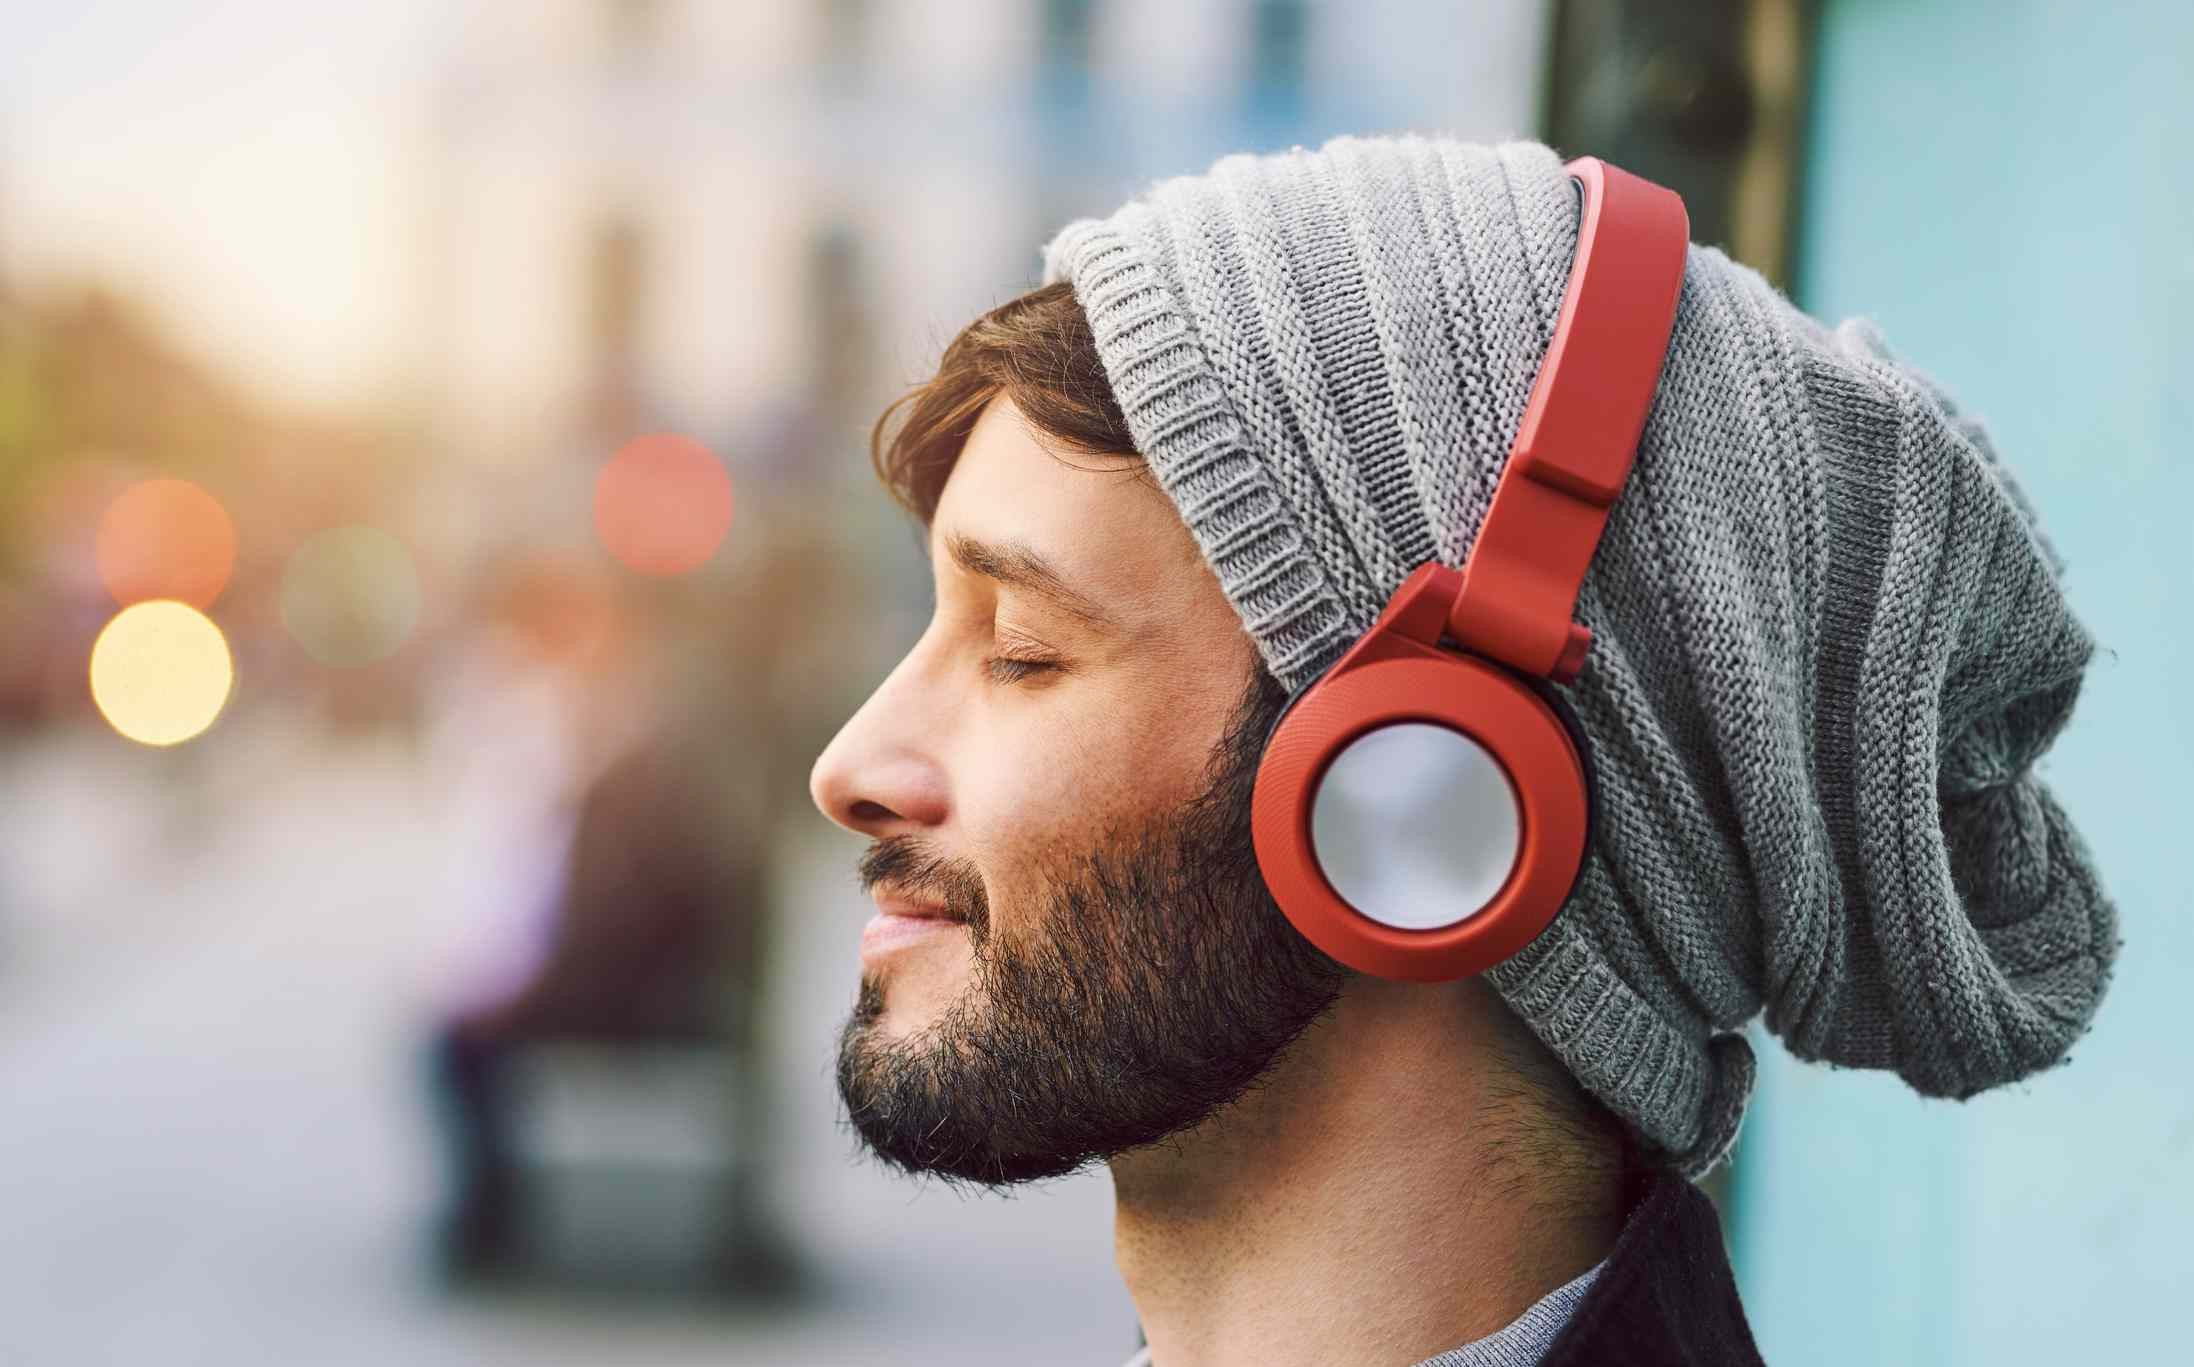 Young man listening to music on his headphones